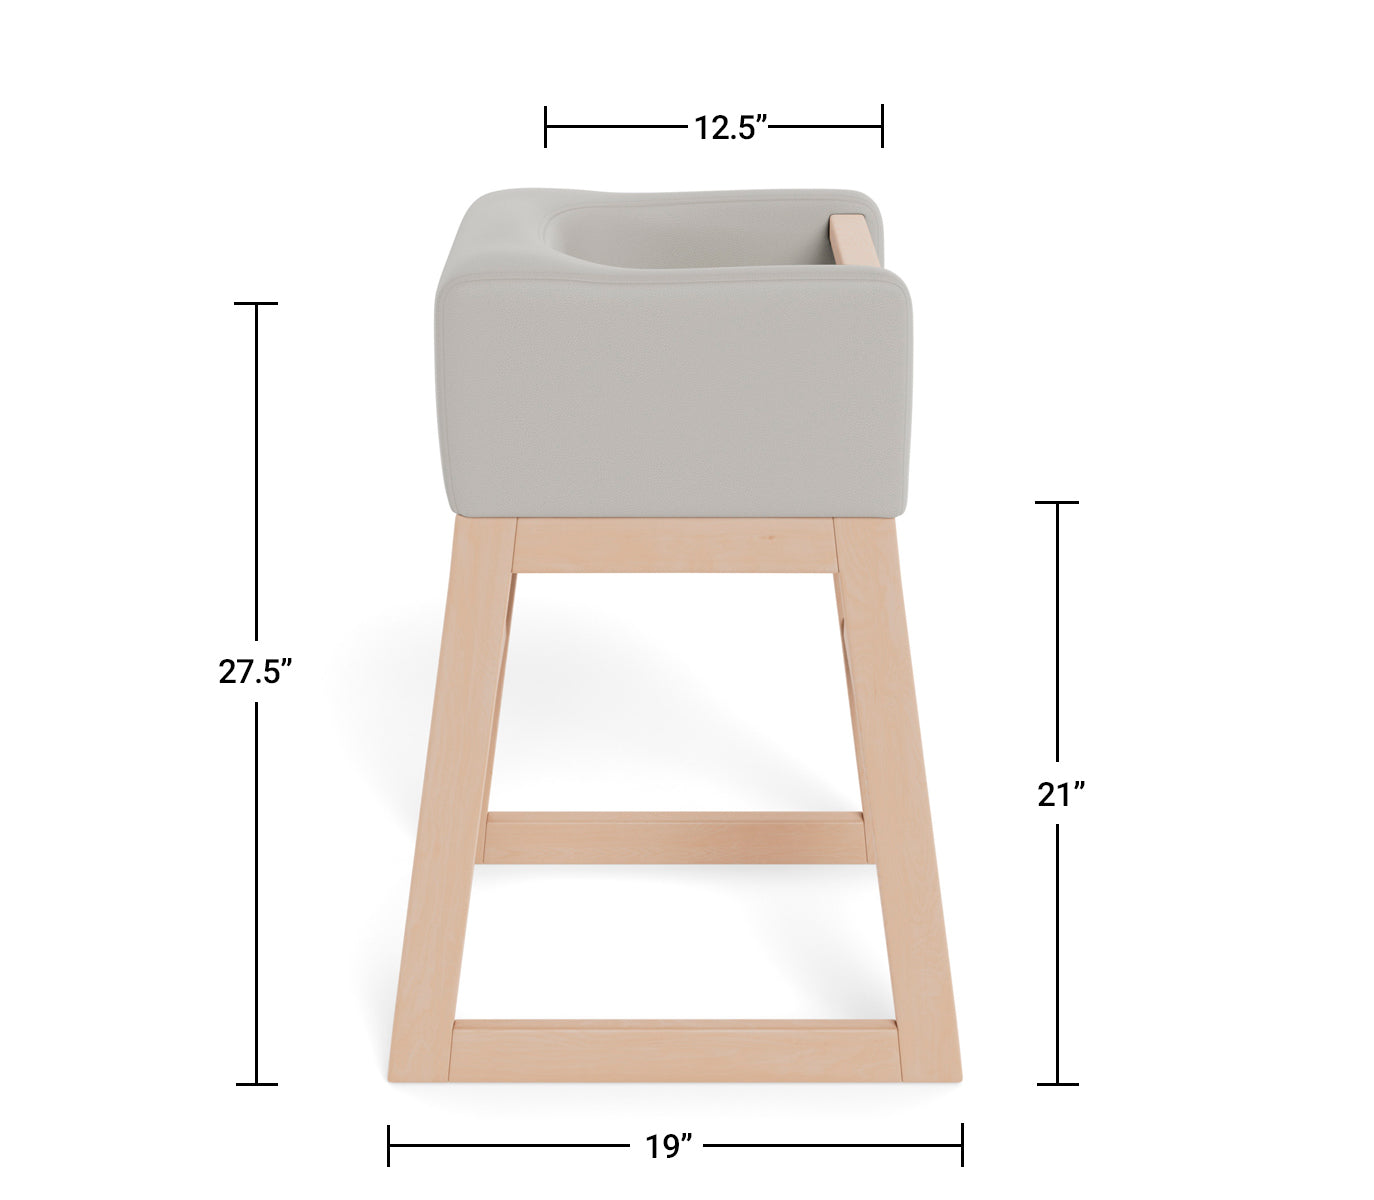 Modern Tavo High Chair Dimensions Side View